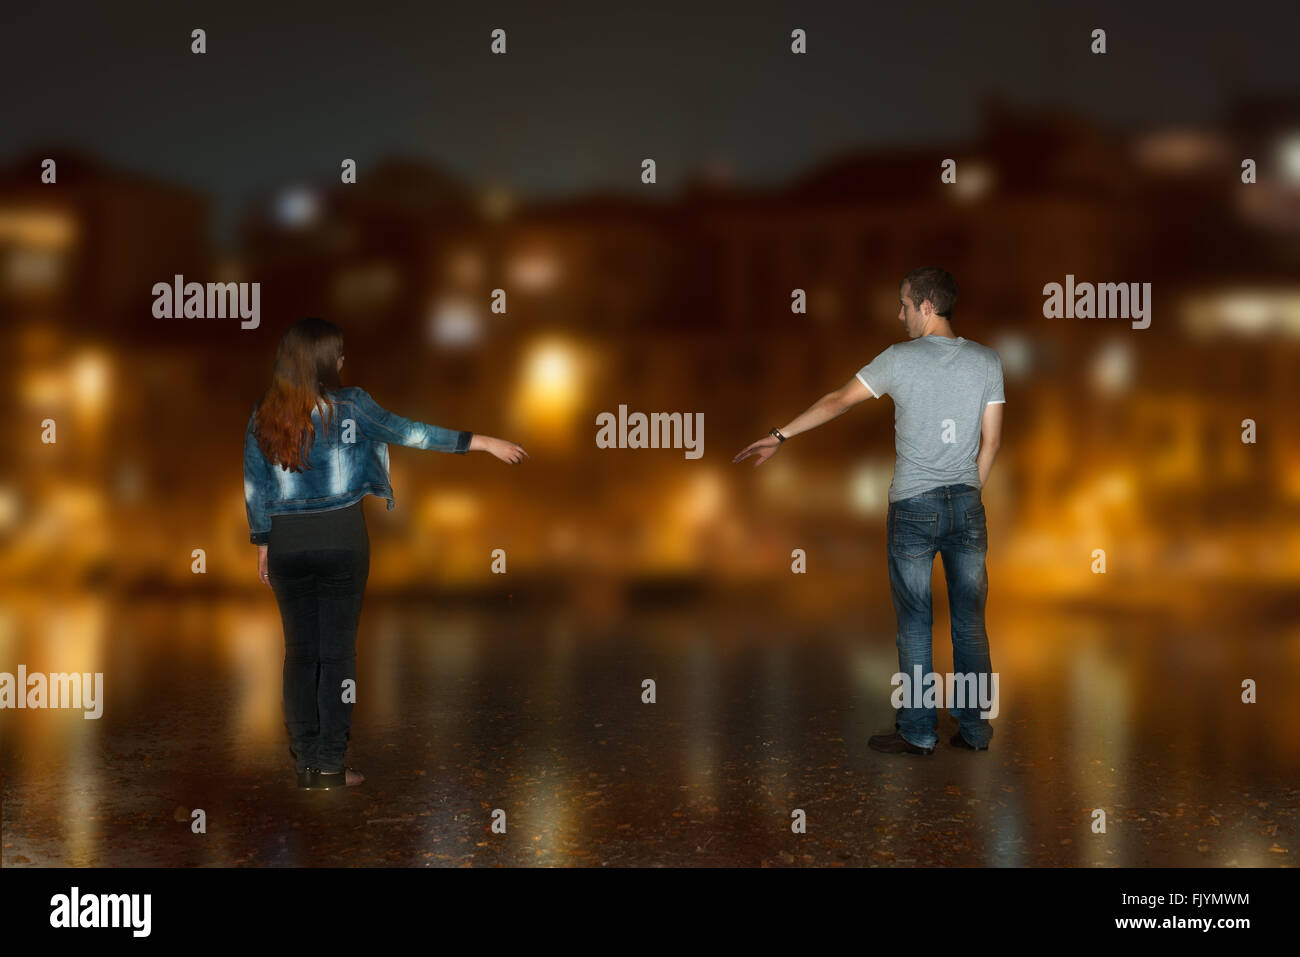 Couple from back side sent arms to each other in night town - Stock Image